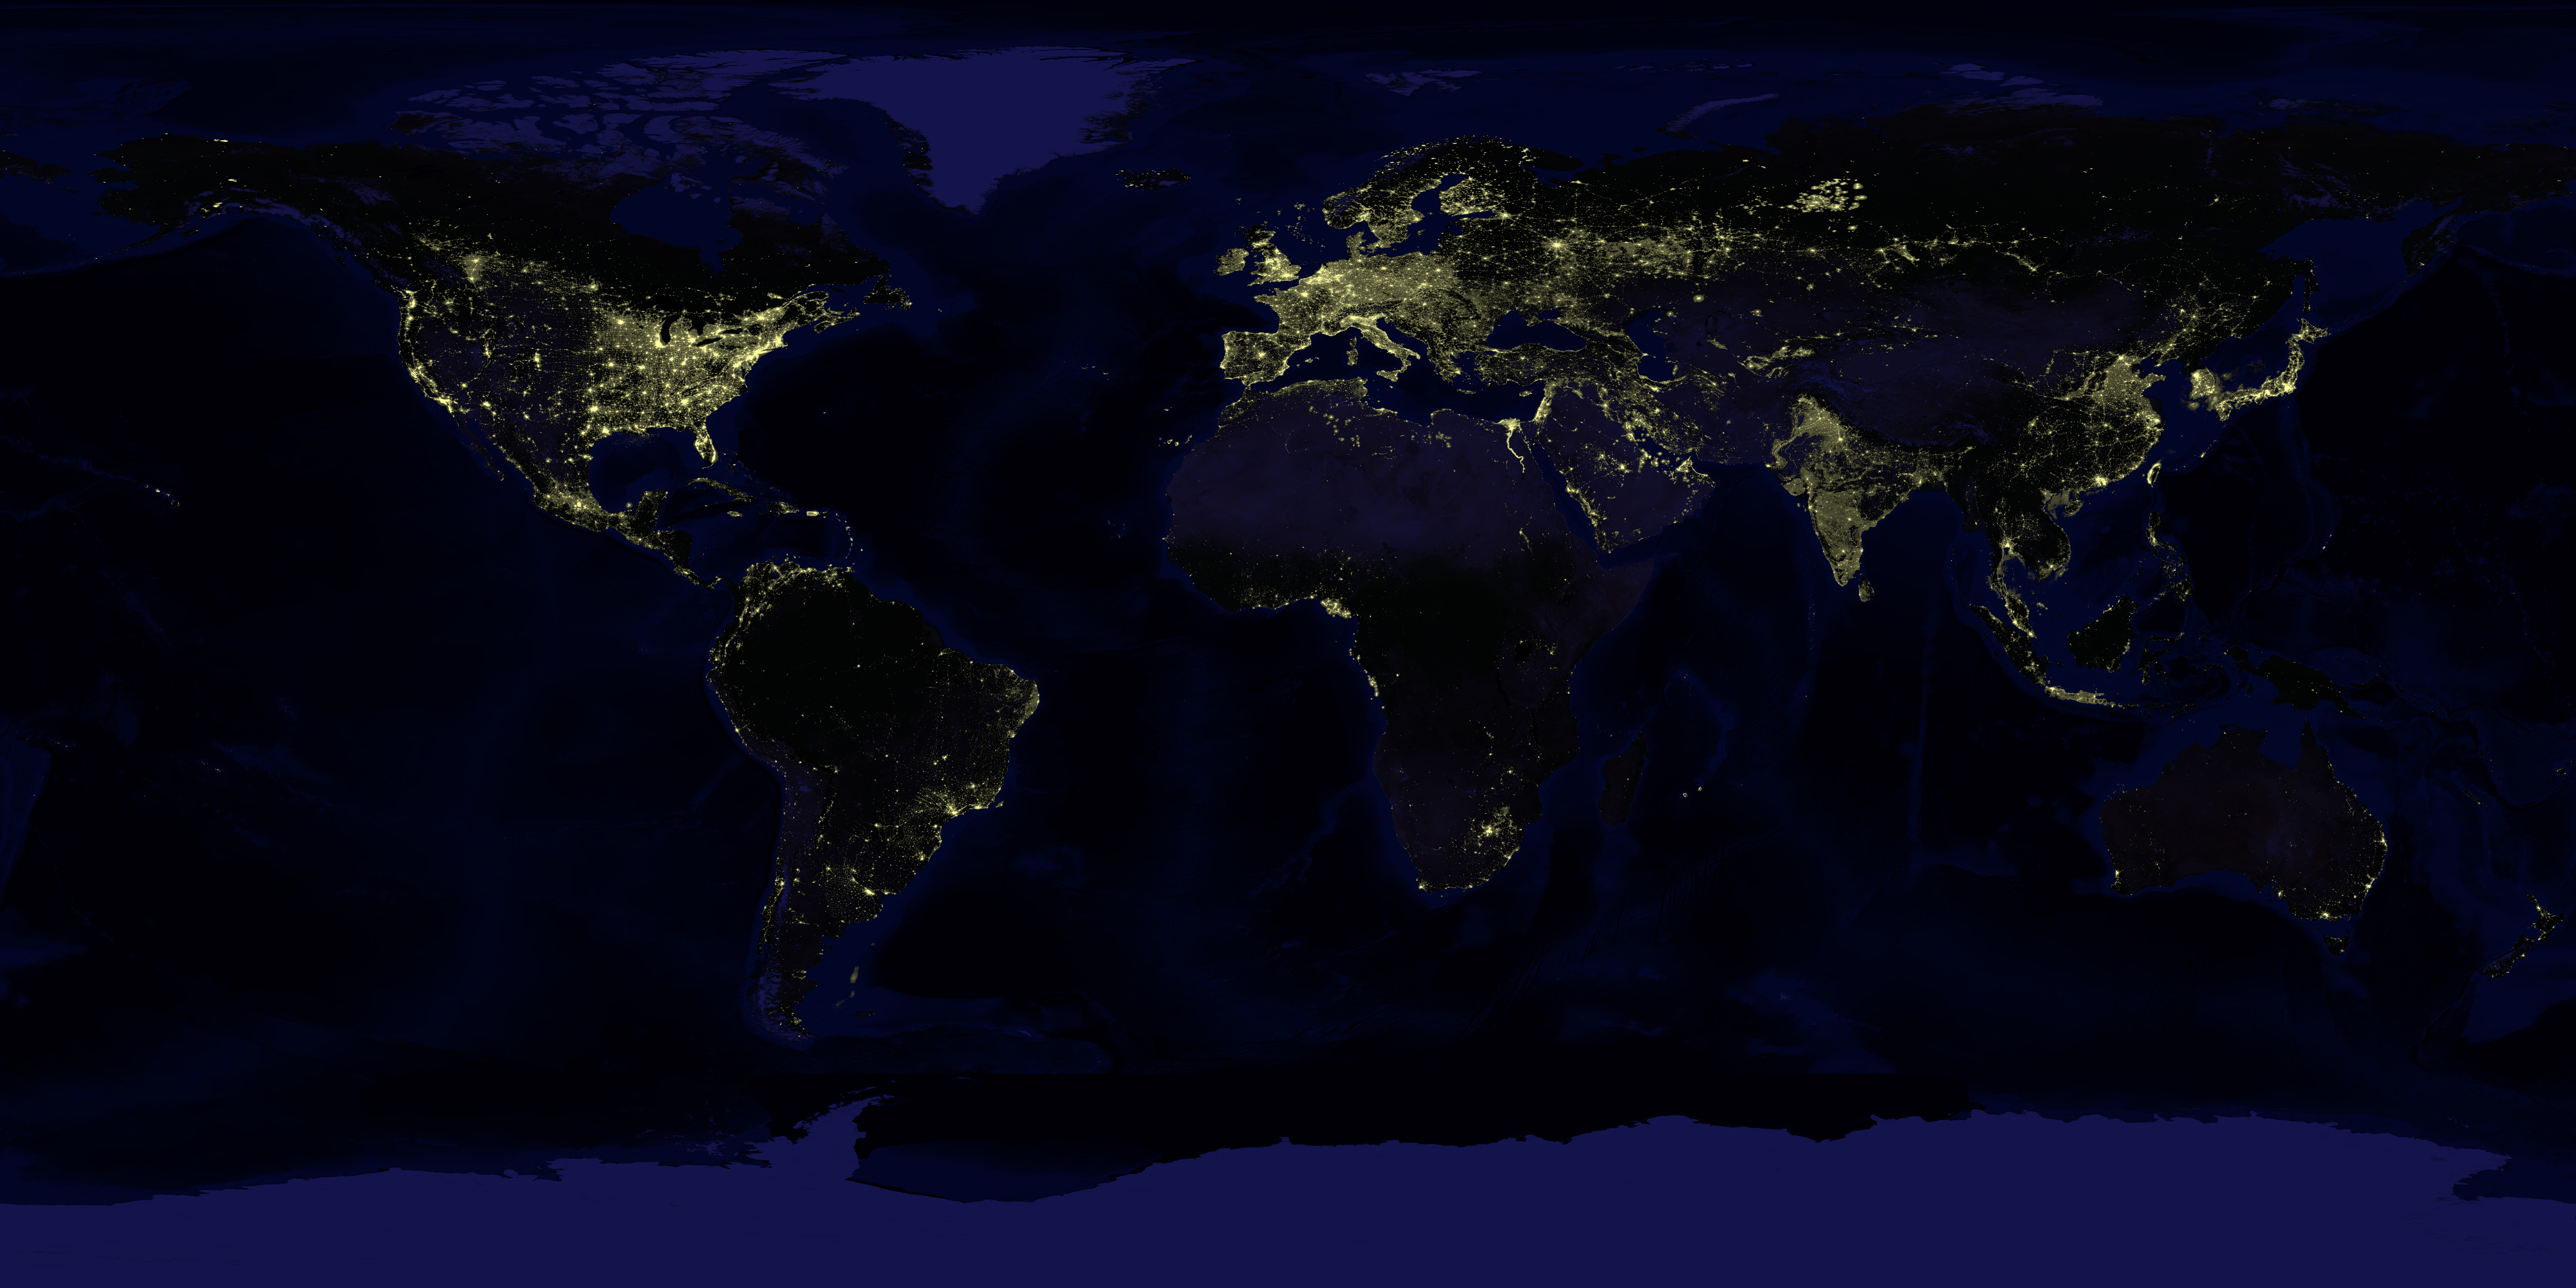 nasa night view of earth - photo #32